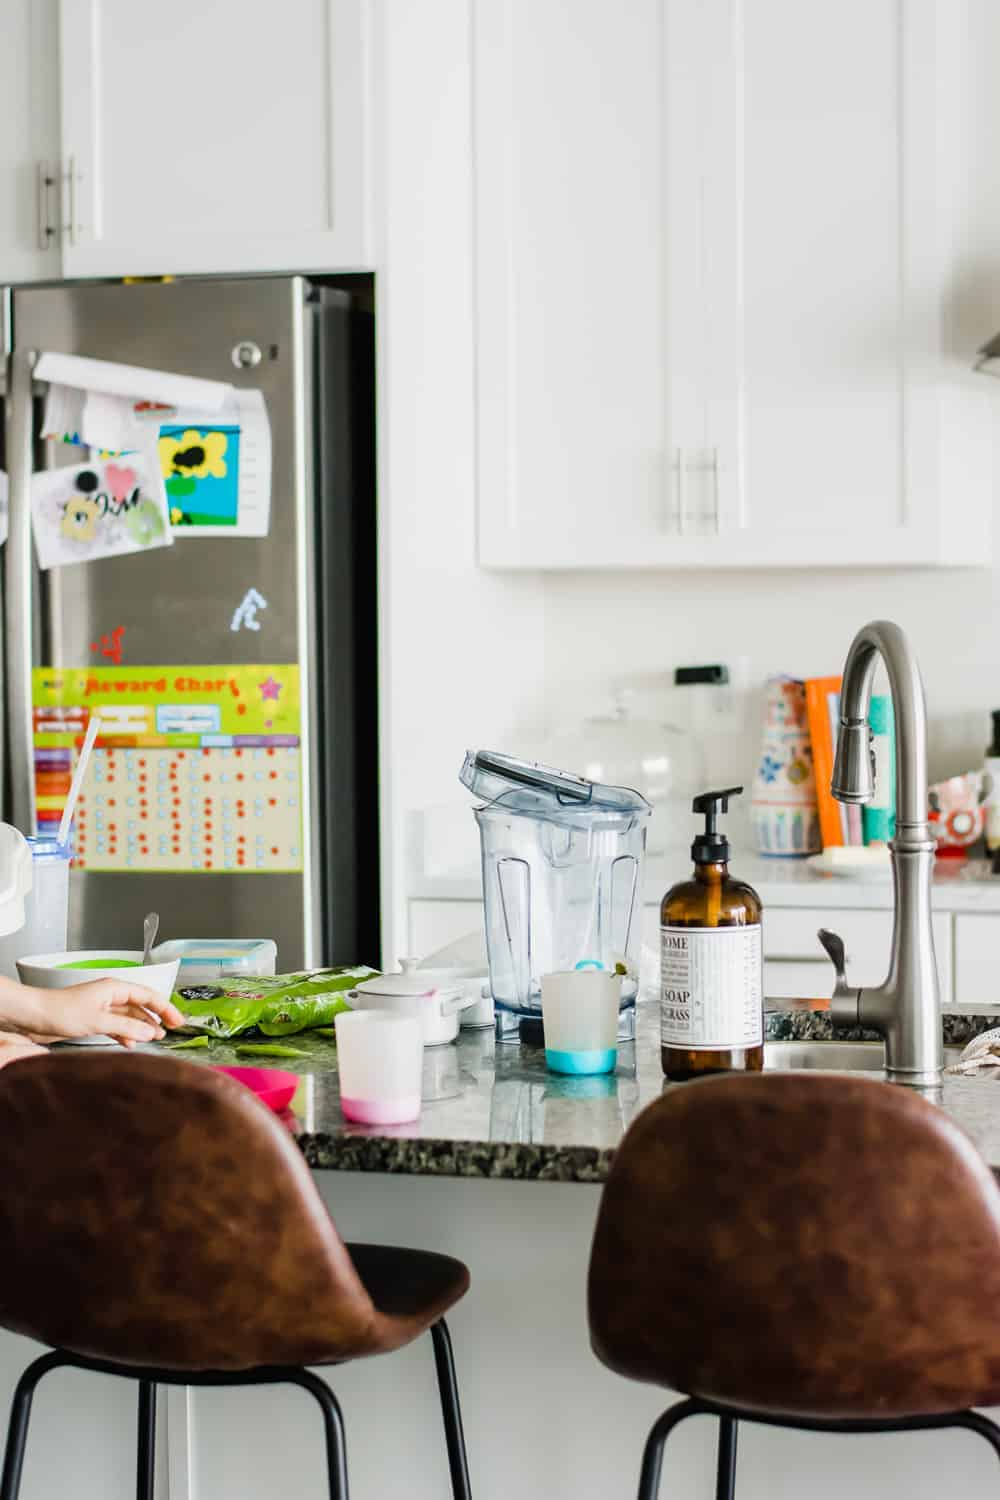 5 Tips for Working from Home with Kids as a Food Blogger   Work from Home Tips, Food Blogger Tips, Work from Home with Kids, How to Work from Home with Kids, Work at Home Mom Tips #workathomemom #workfromhometips #foodbloggertips    The Butter Half via @thebutterhalf